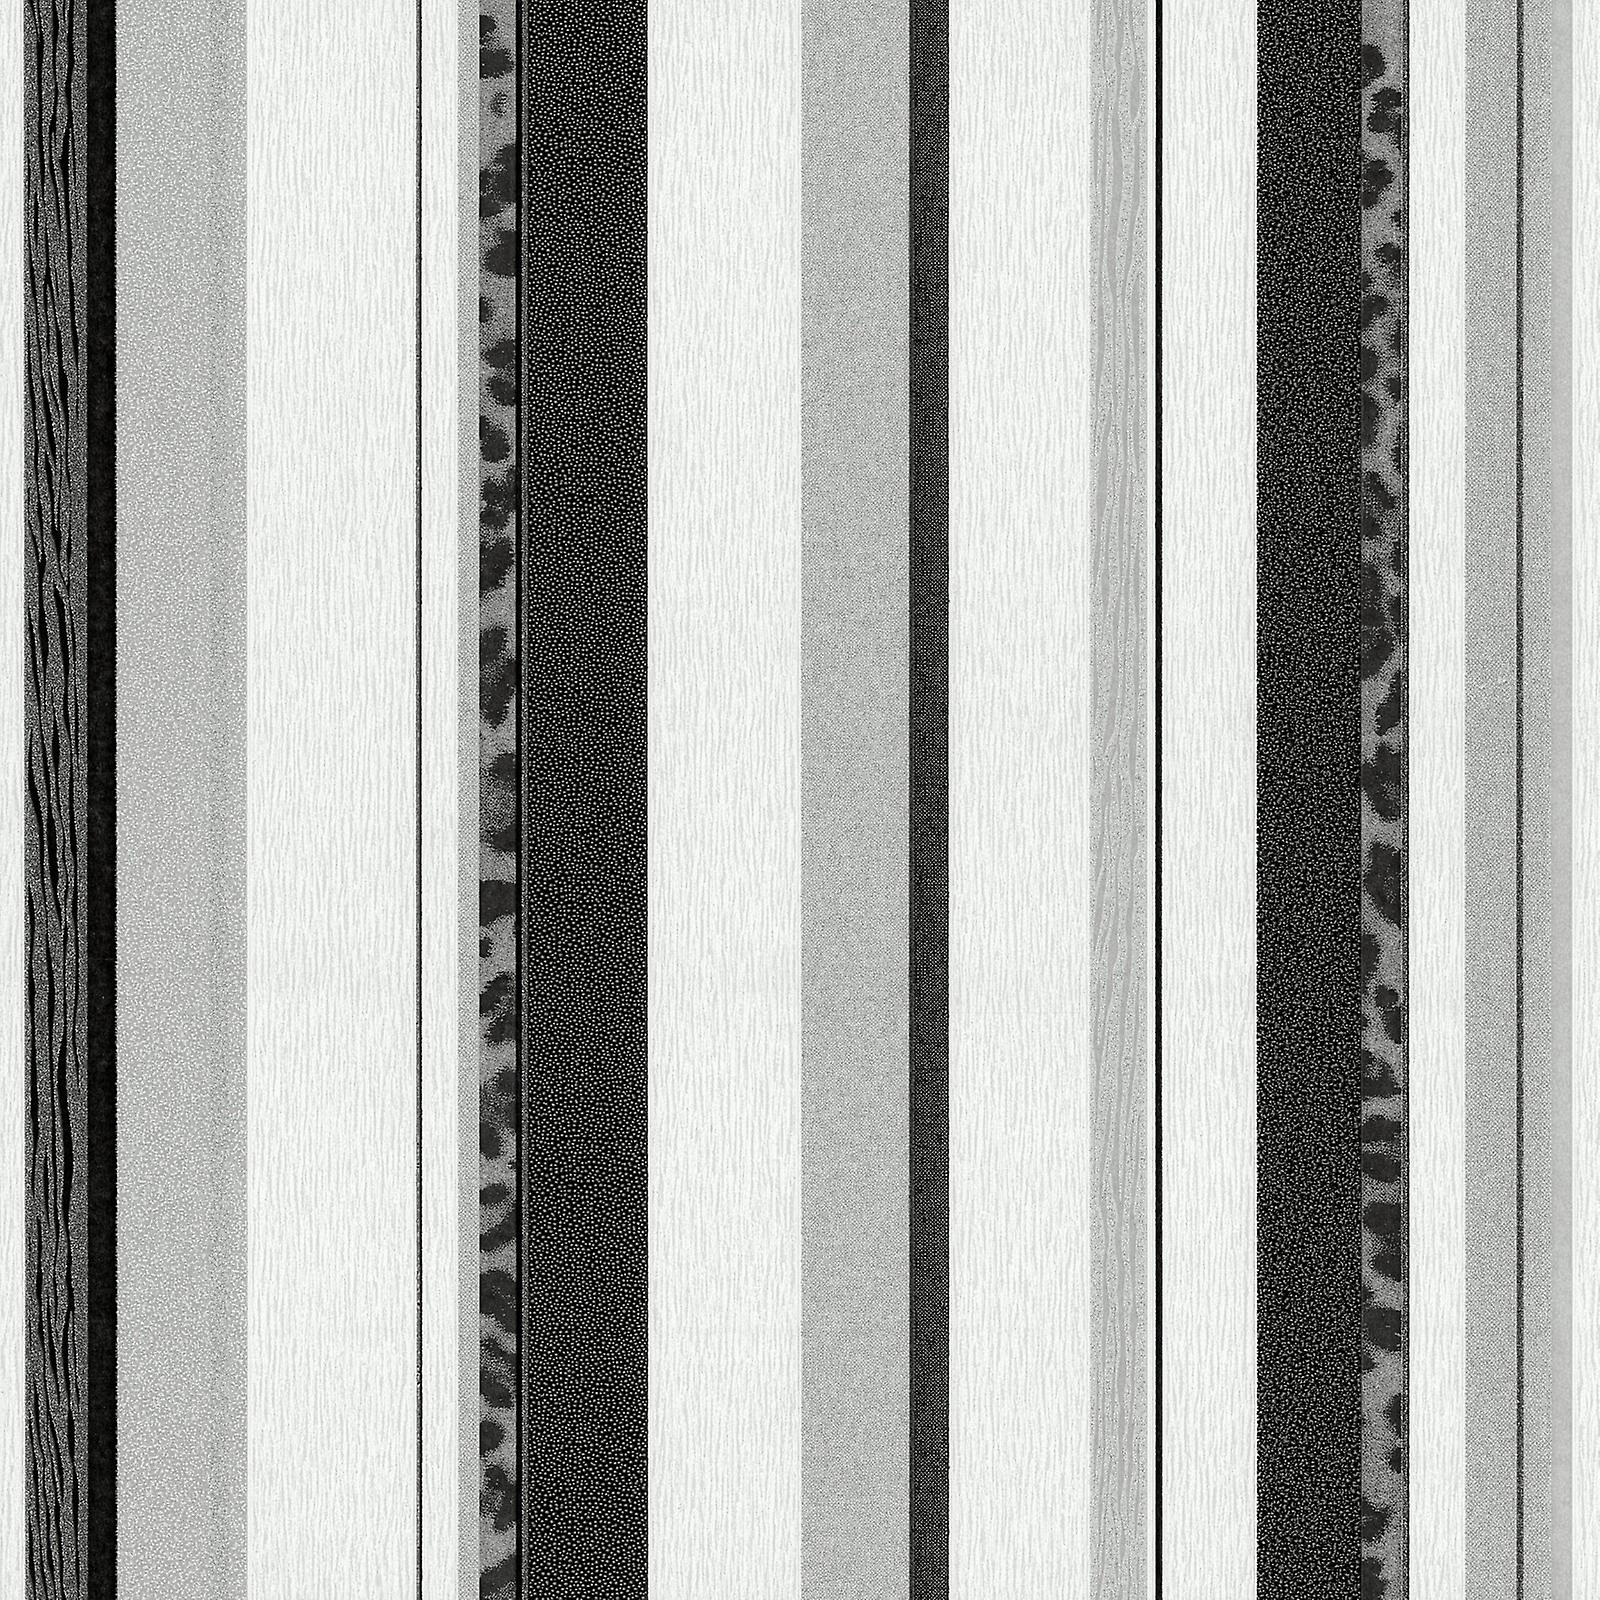 Black and silver striped wallpaper